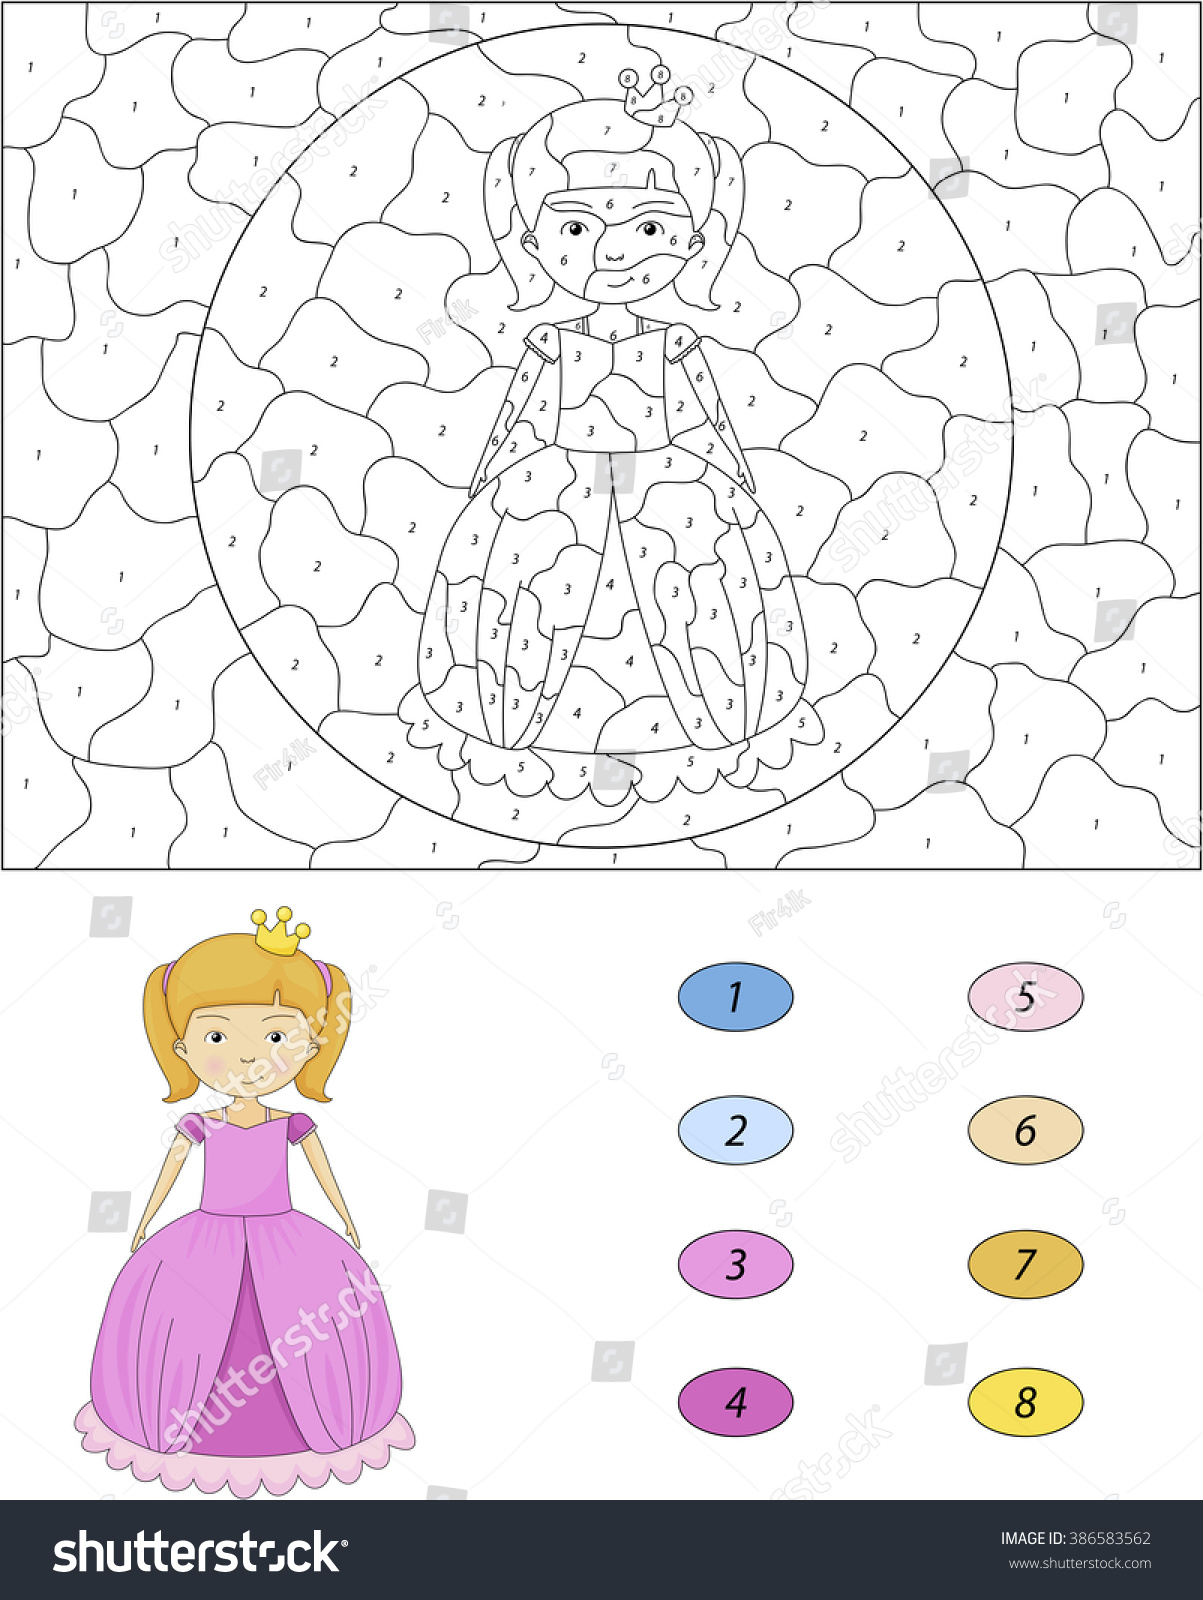 Game color by numbers - Cartoon Princess Color By Number Educational Game For Kids Illustration For Schoolchild And Preschool